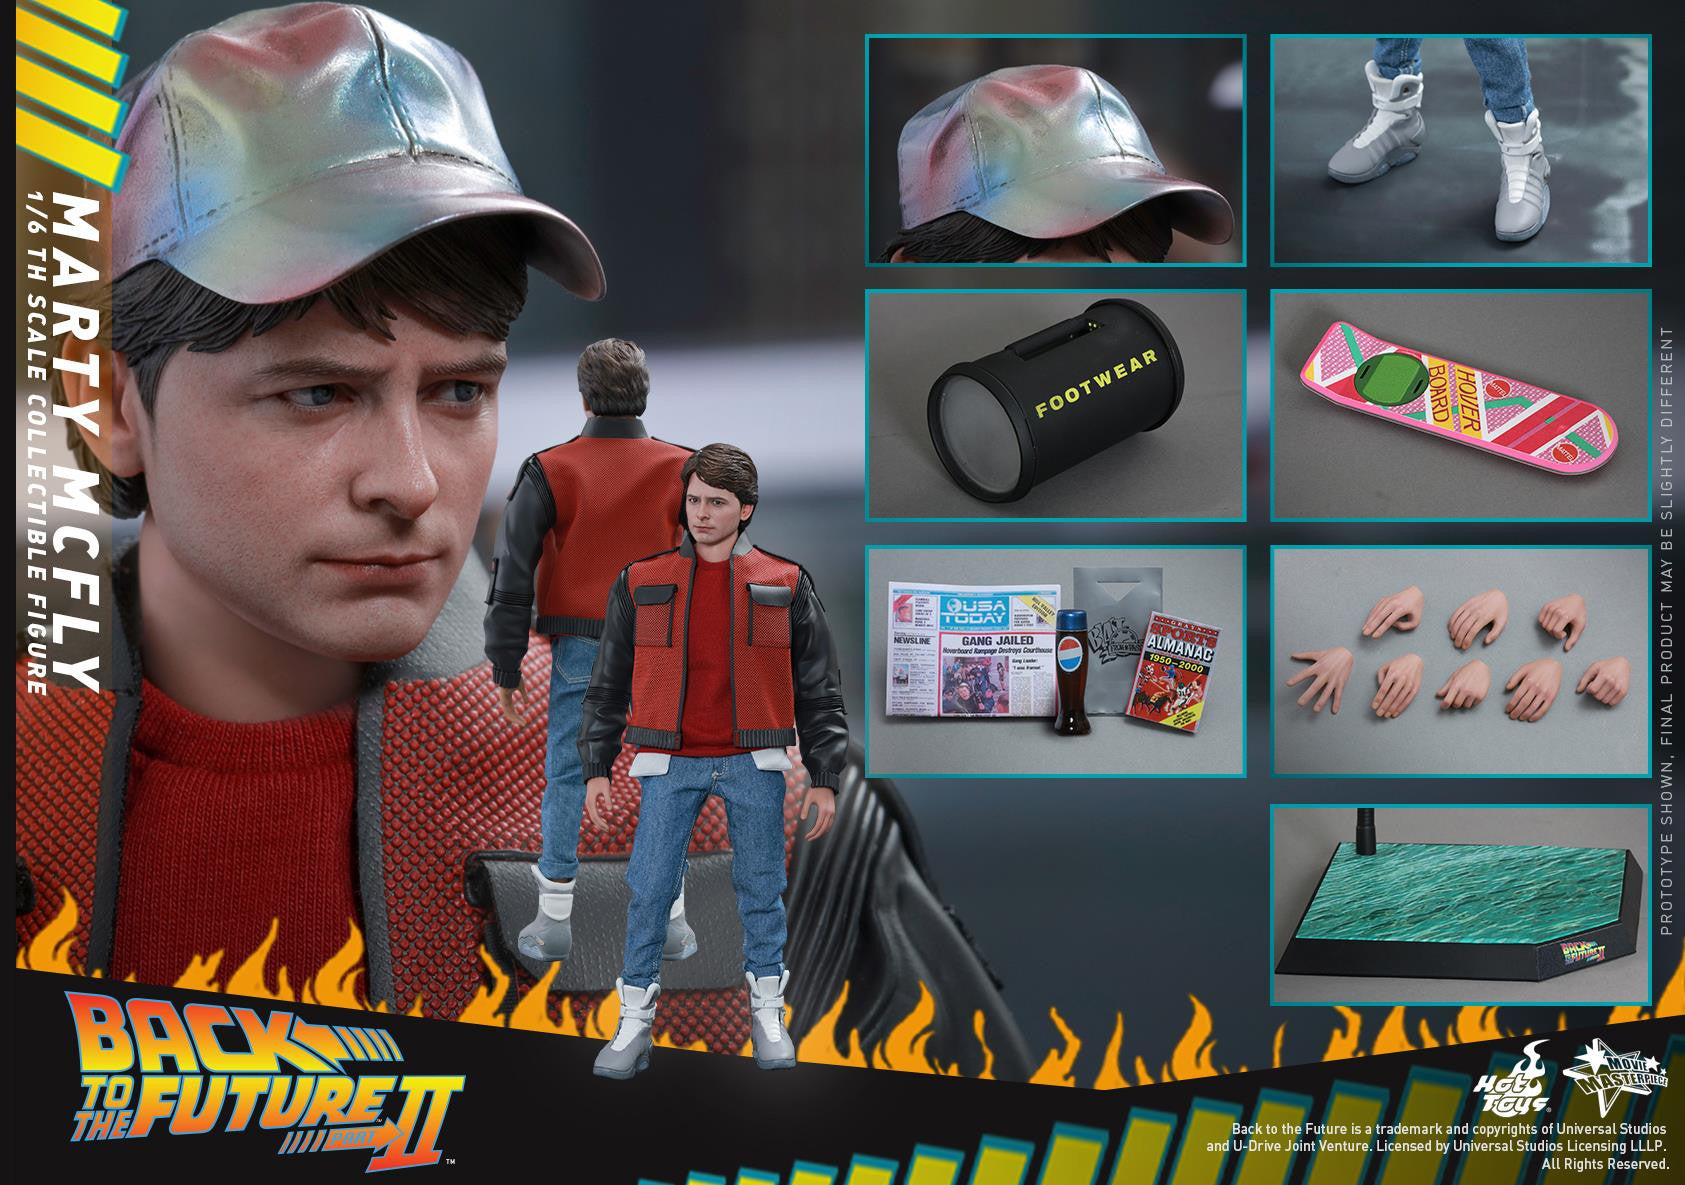 Hot Toys - MMS379 - Back to The Future Part II - Marty McFly (Normal Edition) - Marvelous Toys - 21